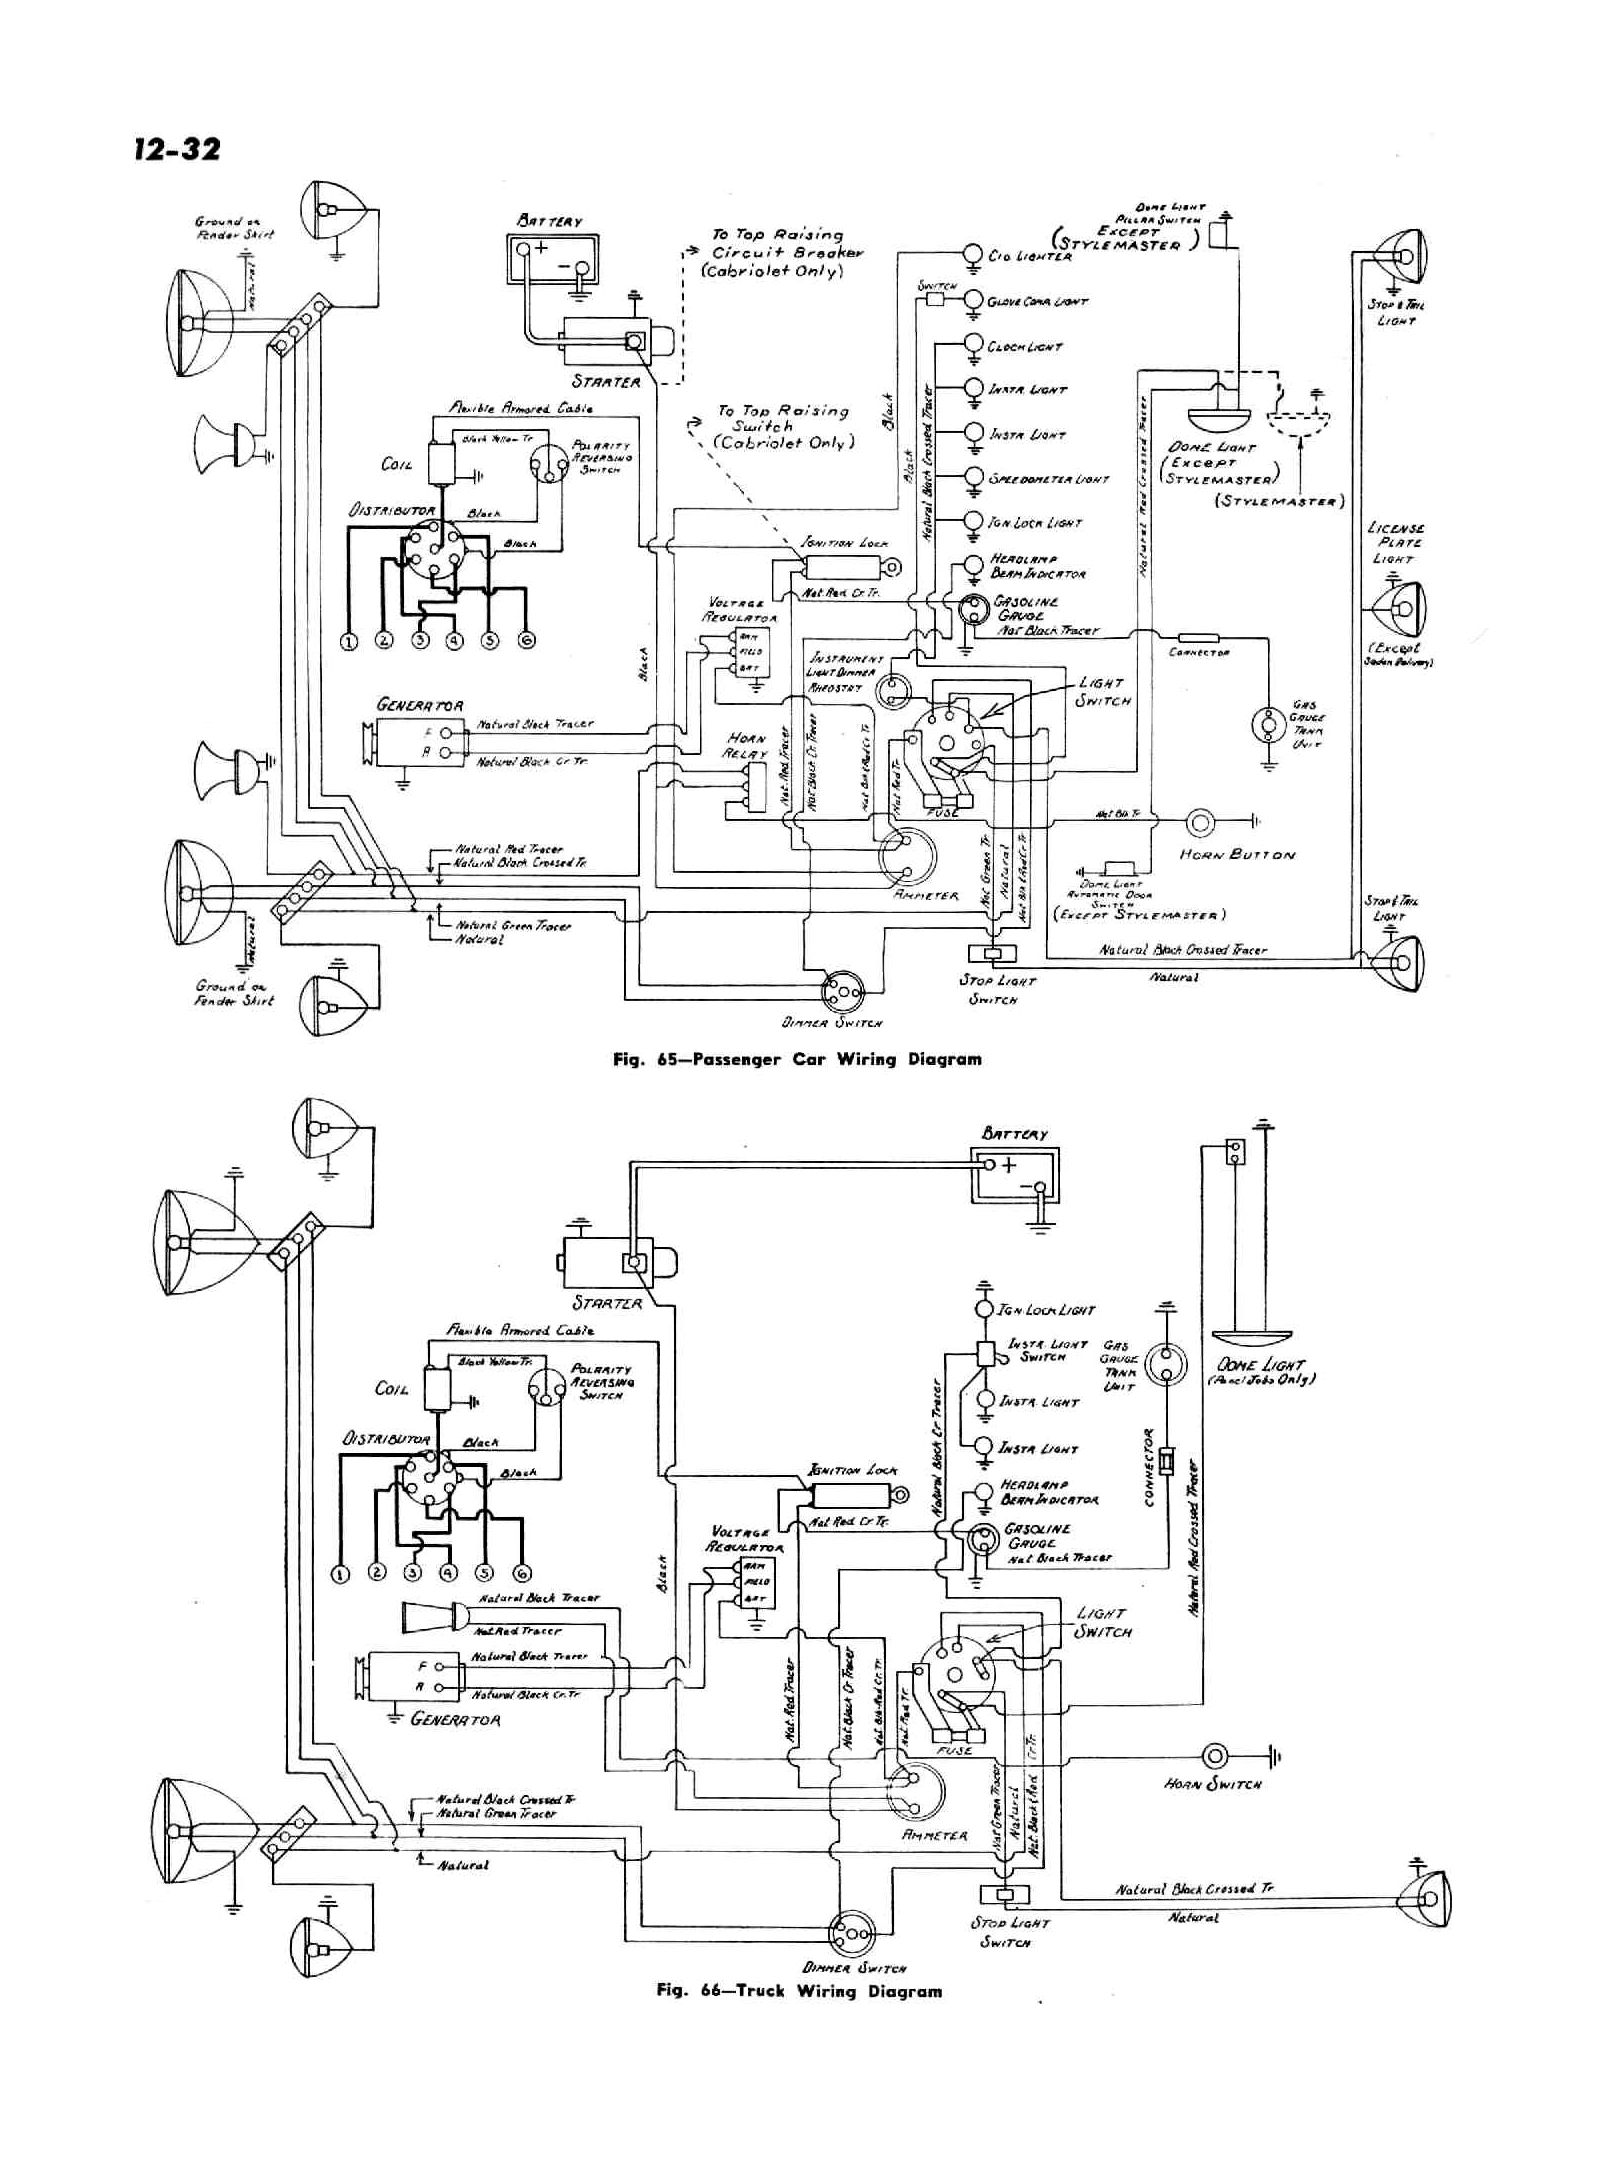 chevy wiring diagrams rh chevy oldcarmanualproject com 2000 Oldsmobile Intrigue Engine Diagram 2000 Oldsmobile Silhouette Engine Diagram